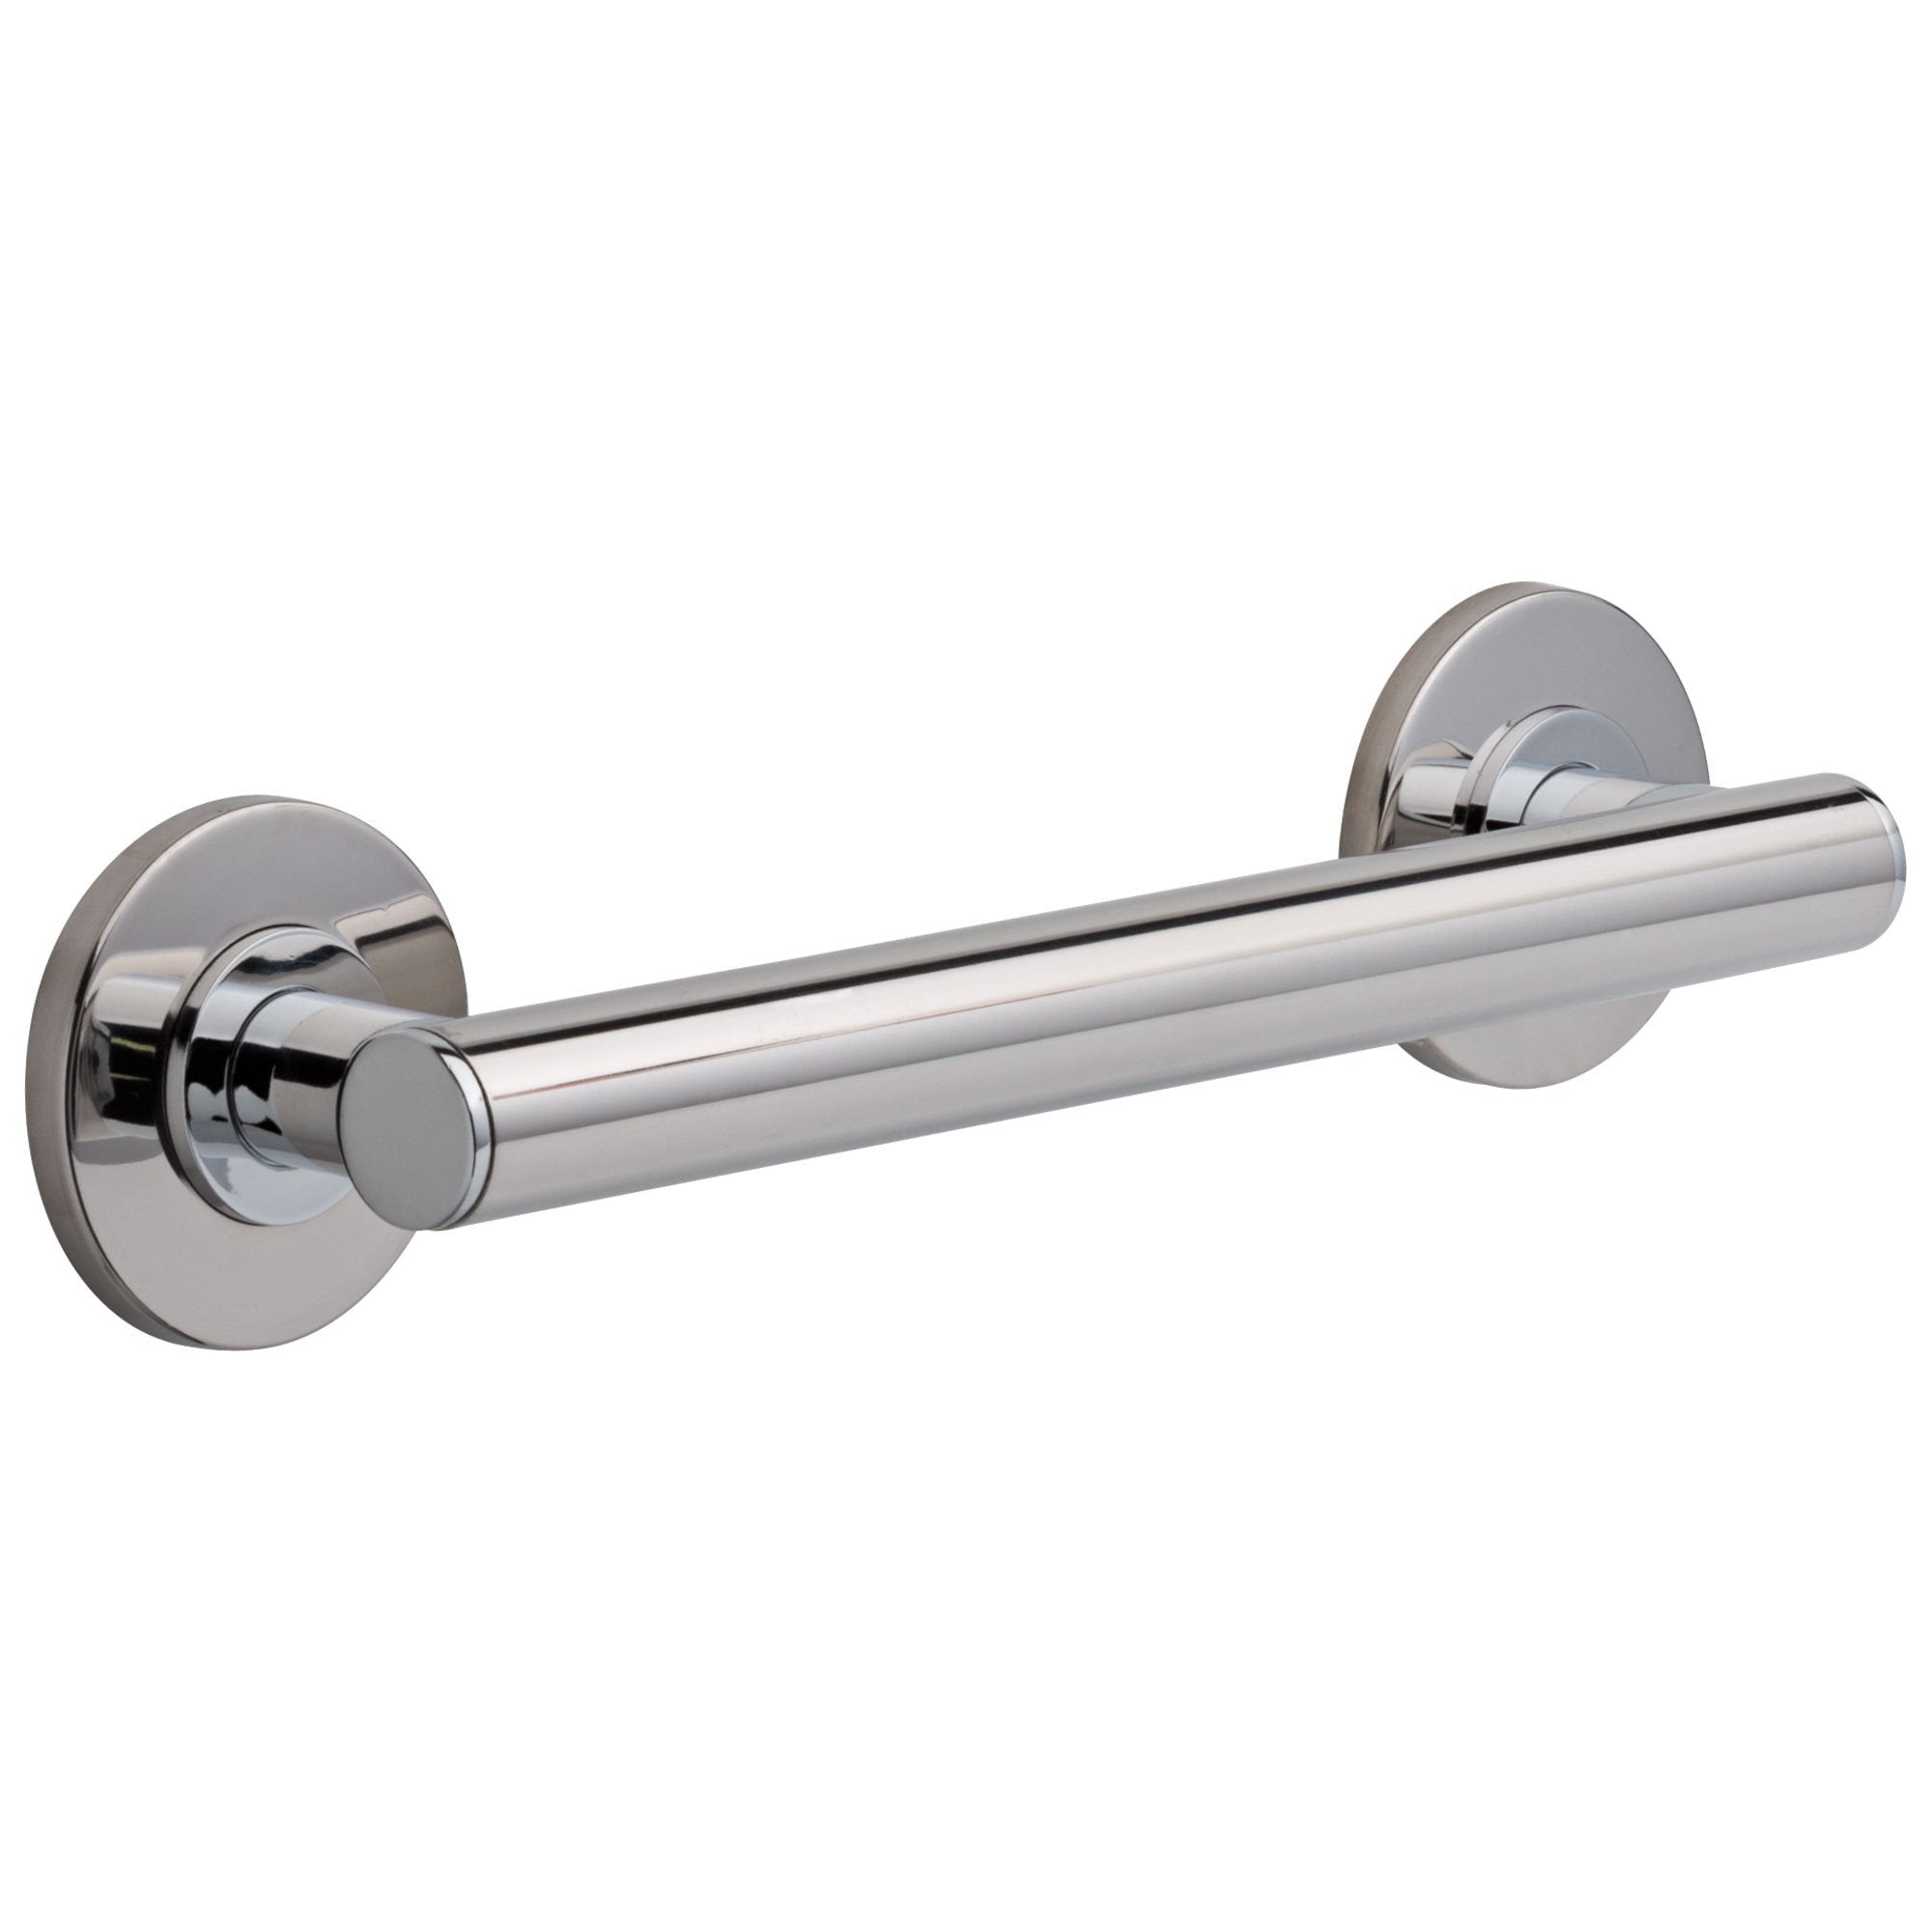 Delta Bath Safety Collection Chrome Finish Contemporary Decorative ADA Wall Mount 12-inch Grab Bar D41812